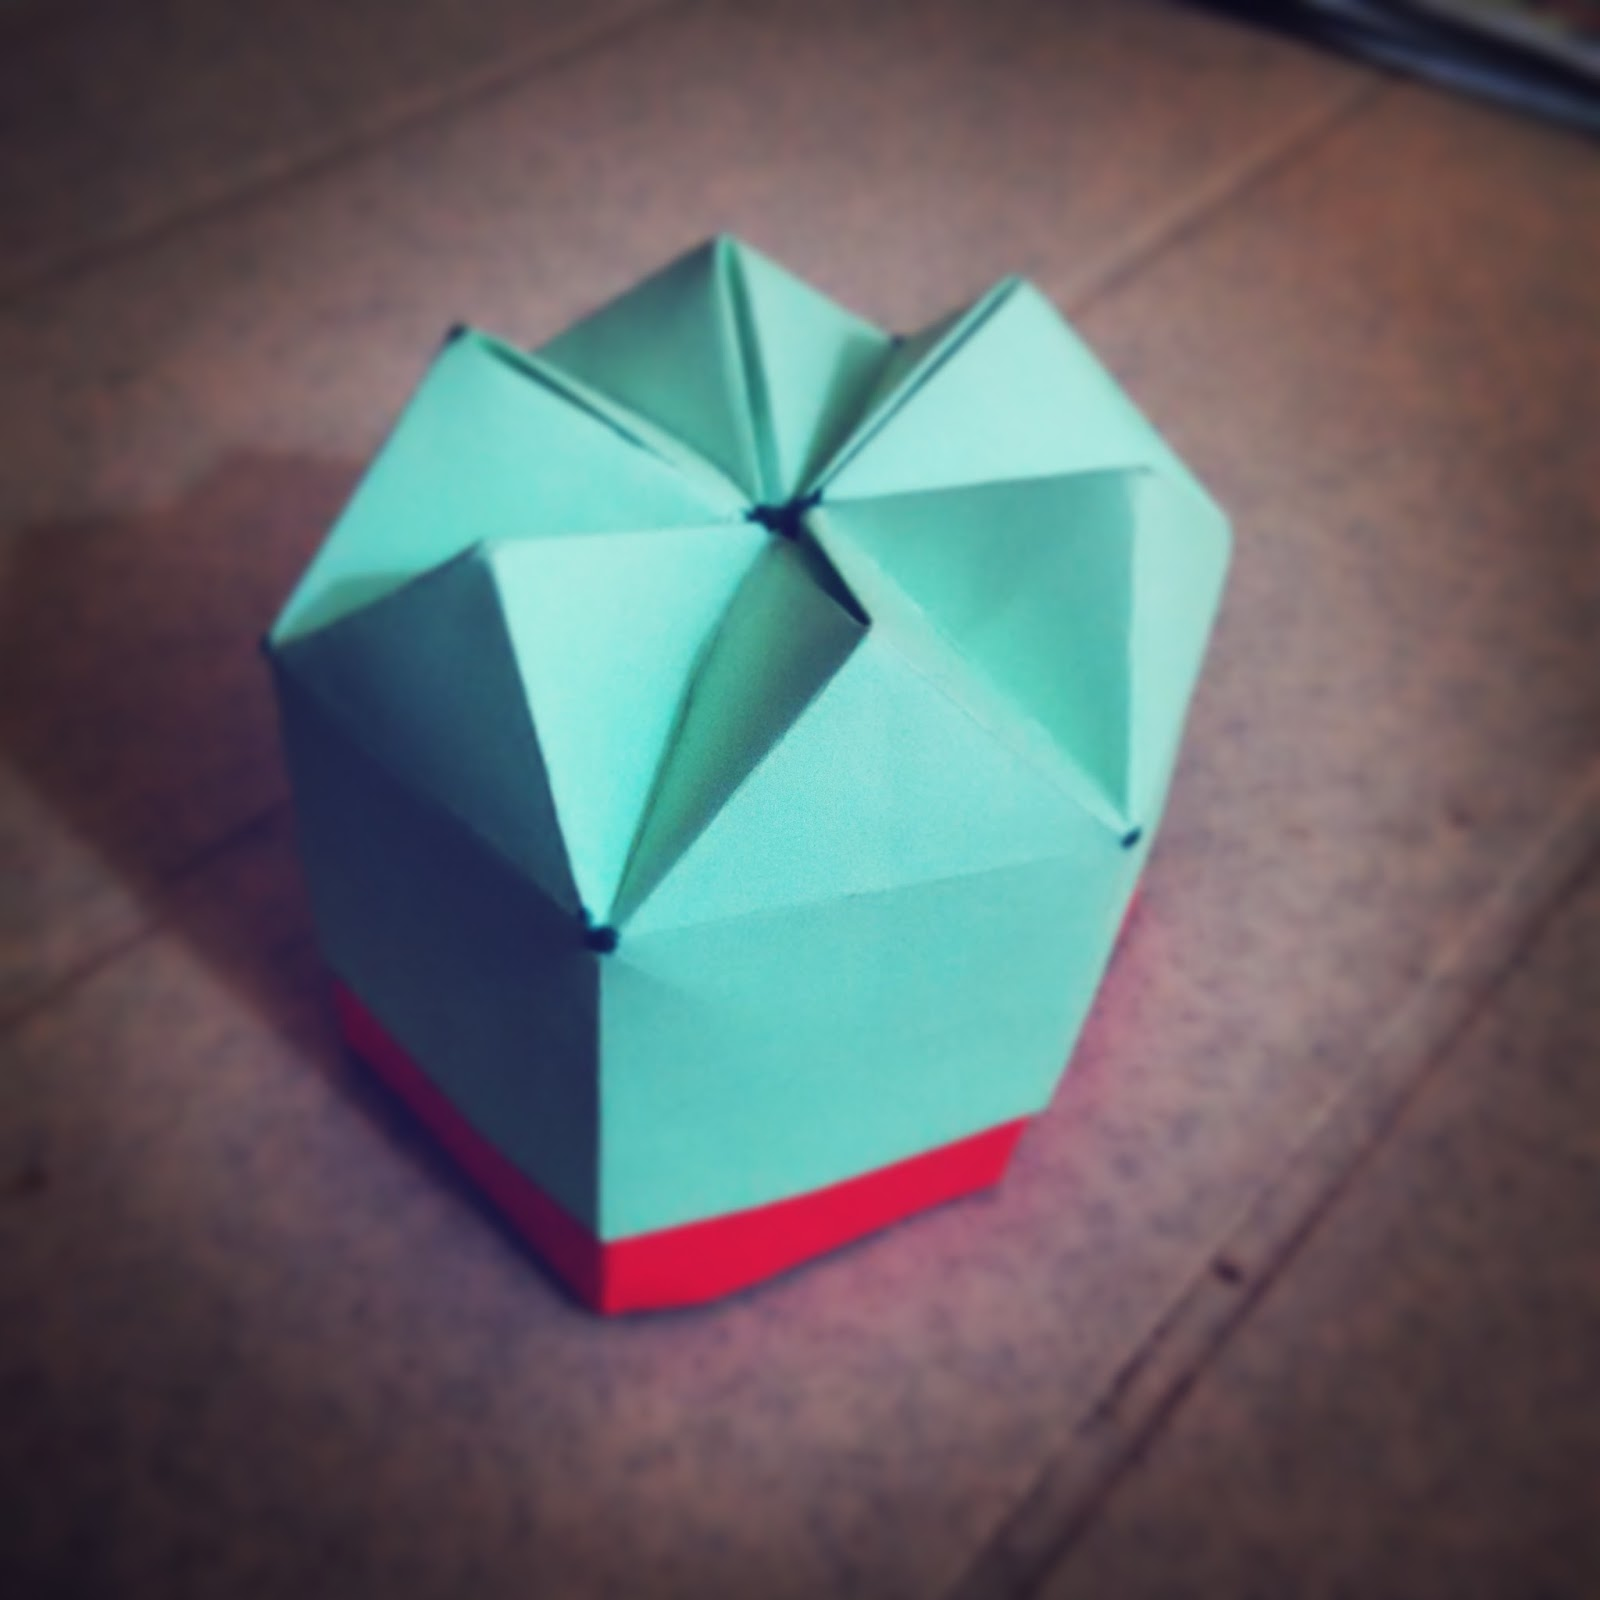 small resolution of  hexagon gift box tomoko fuse try watching this video on www youtube com or enable javascript if it